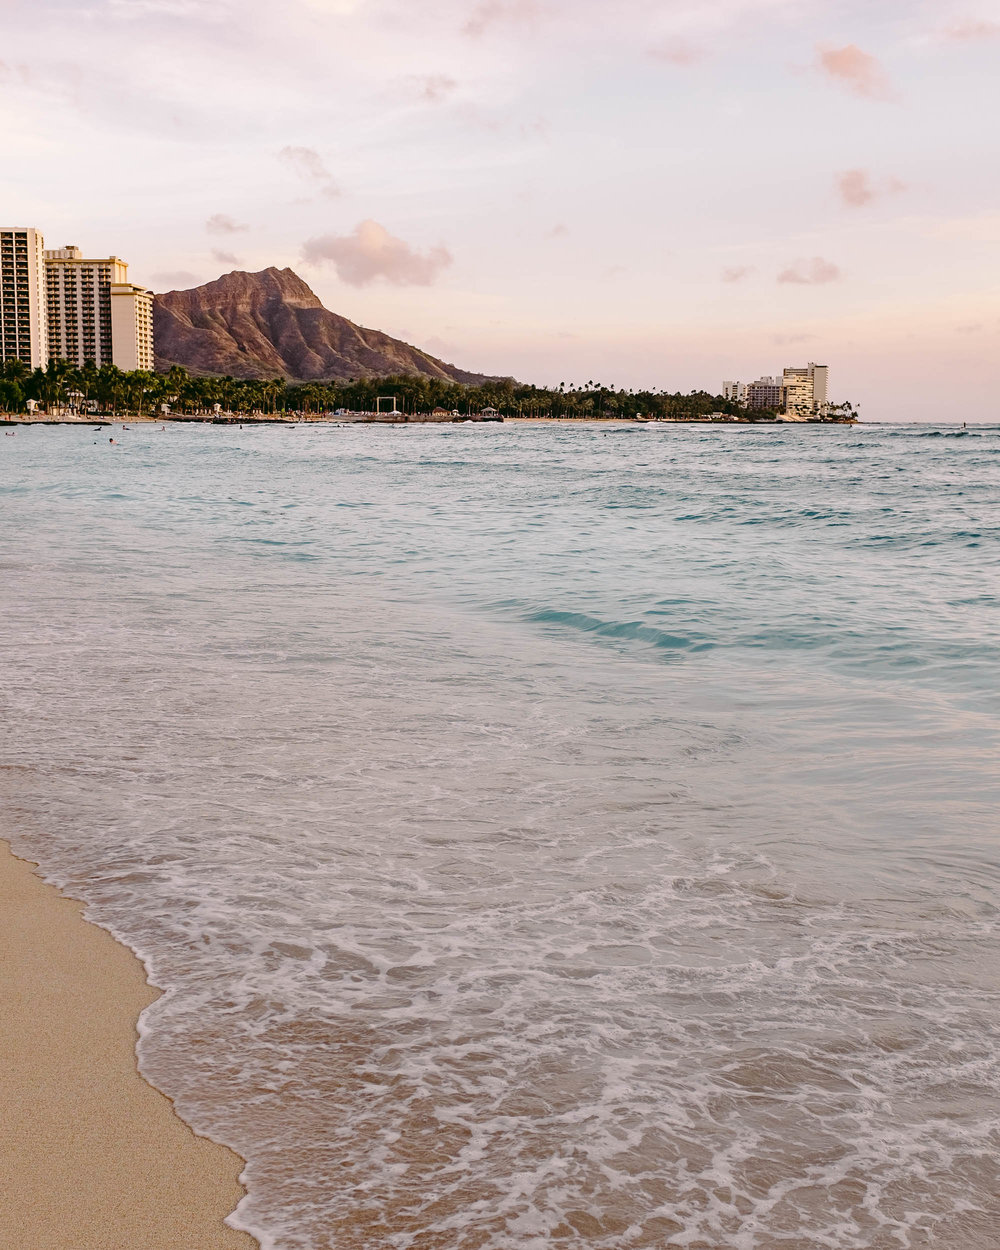 Waikiki Beach and Diamond Head Crater National Monument | Waikiki Oahu